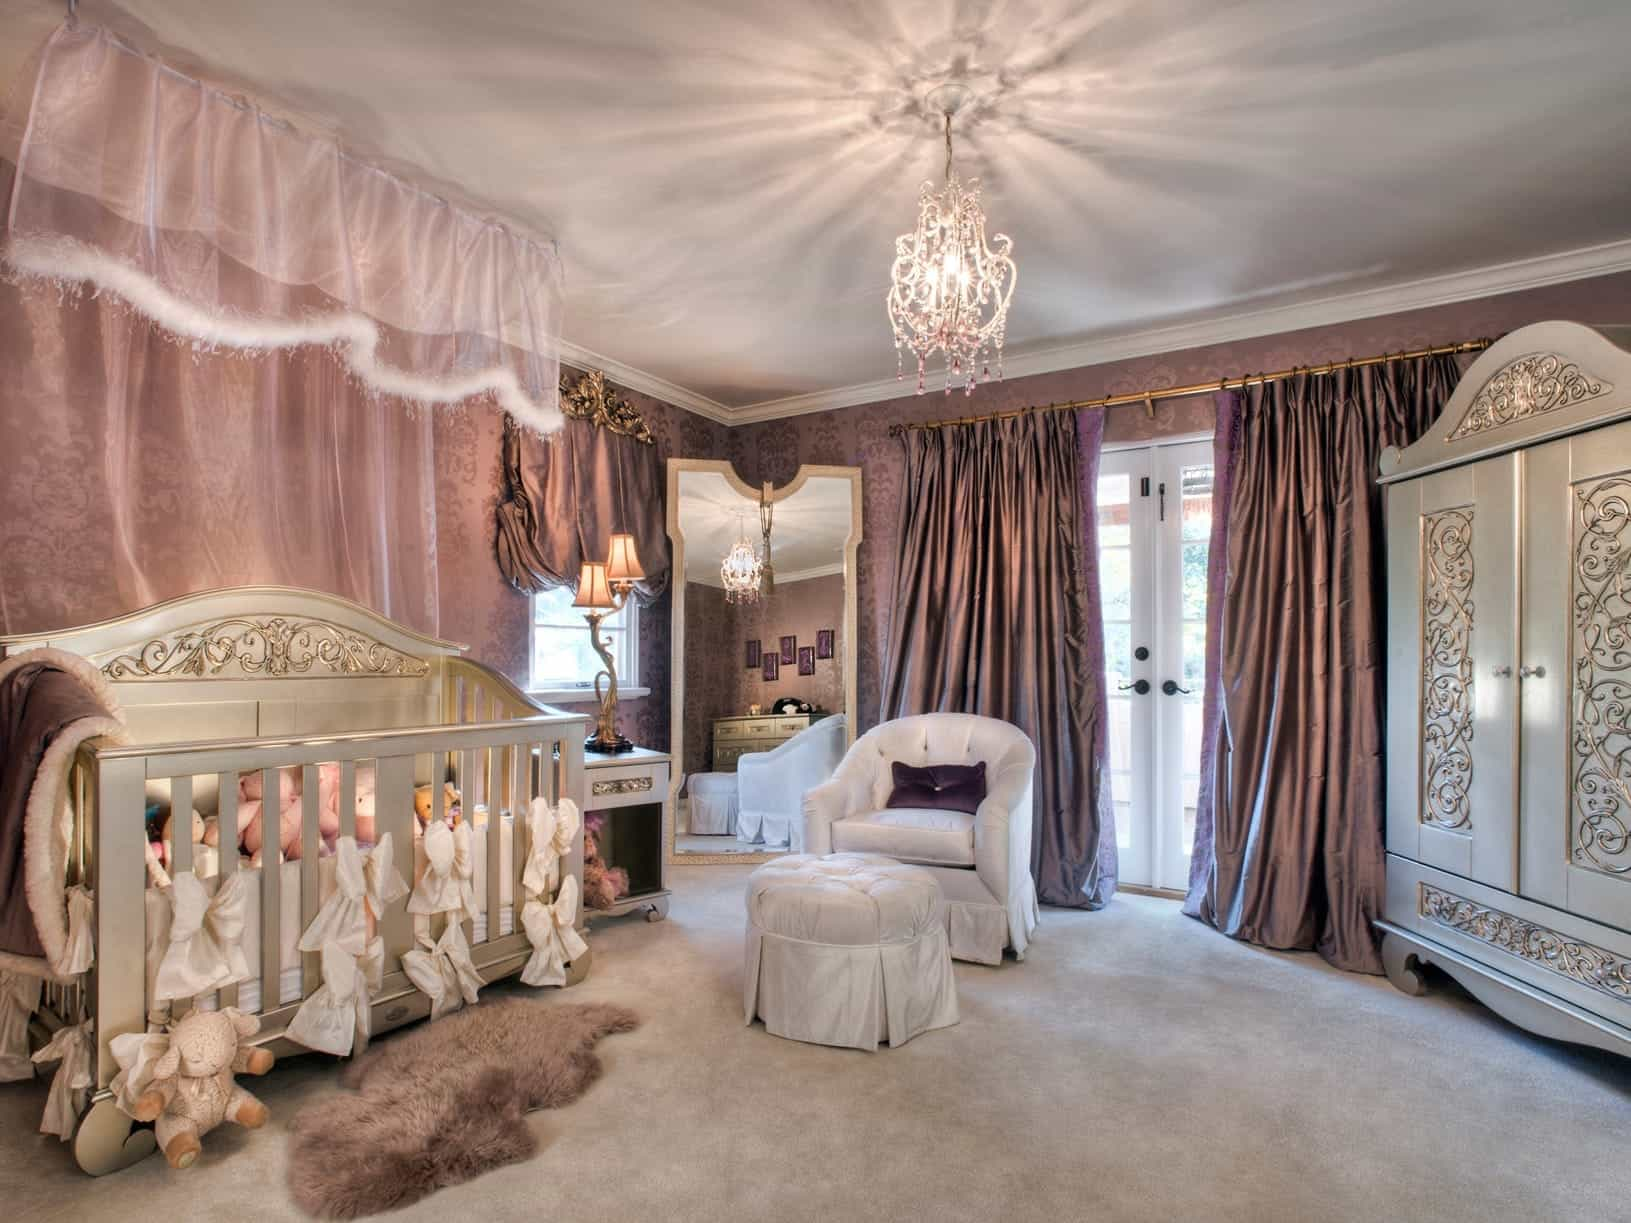 Large Lavender Girl's Nursery With Elegant Furninshings (Image 12 of 33)